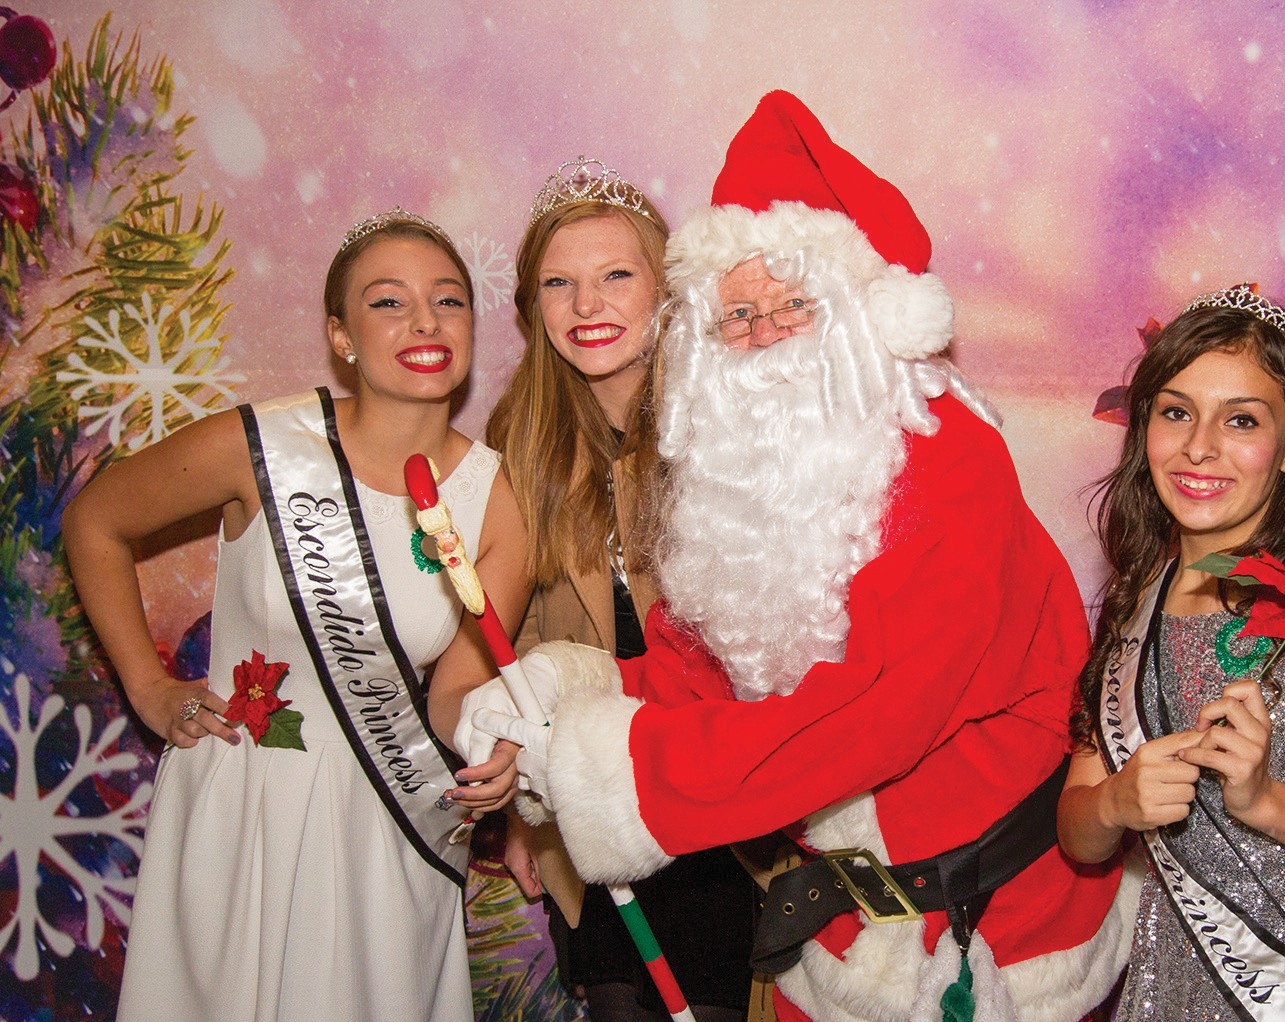 Santa Claus will make an appearance this year. Here he shown last year with his helpers.